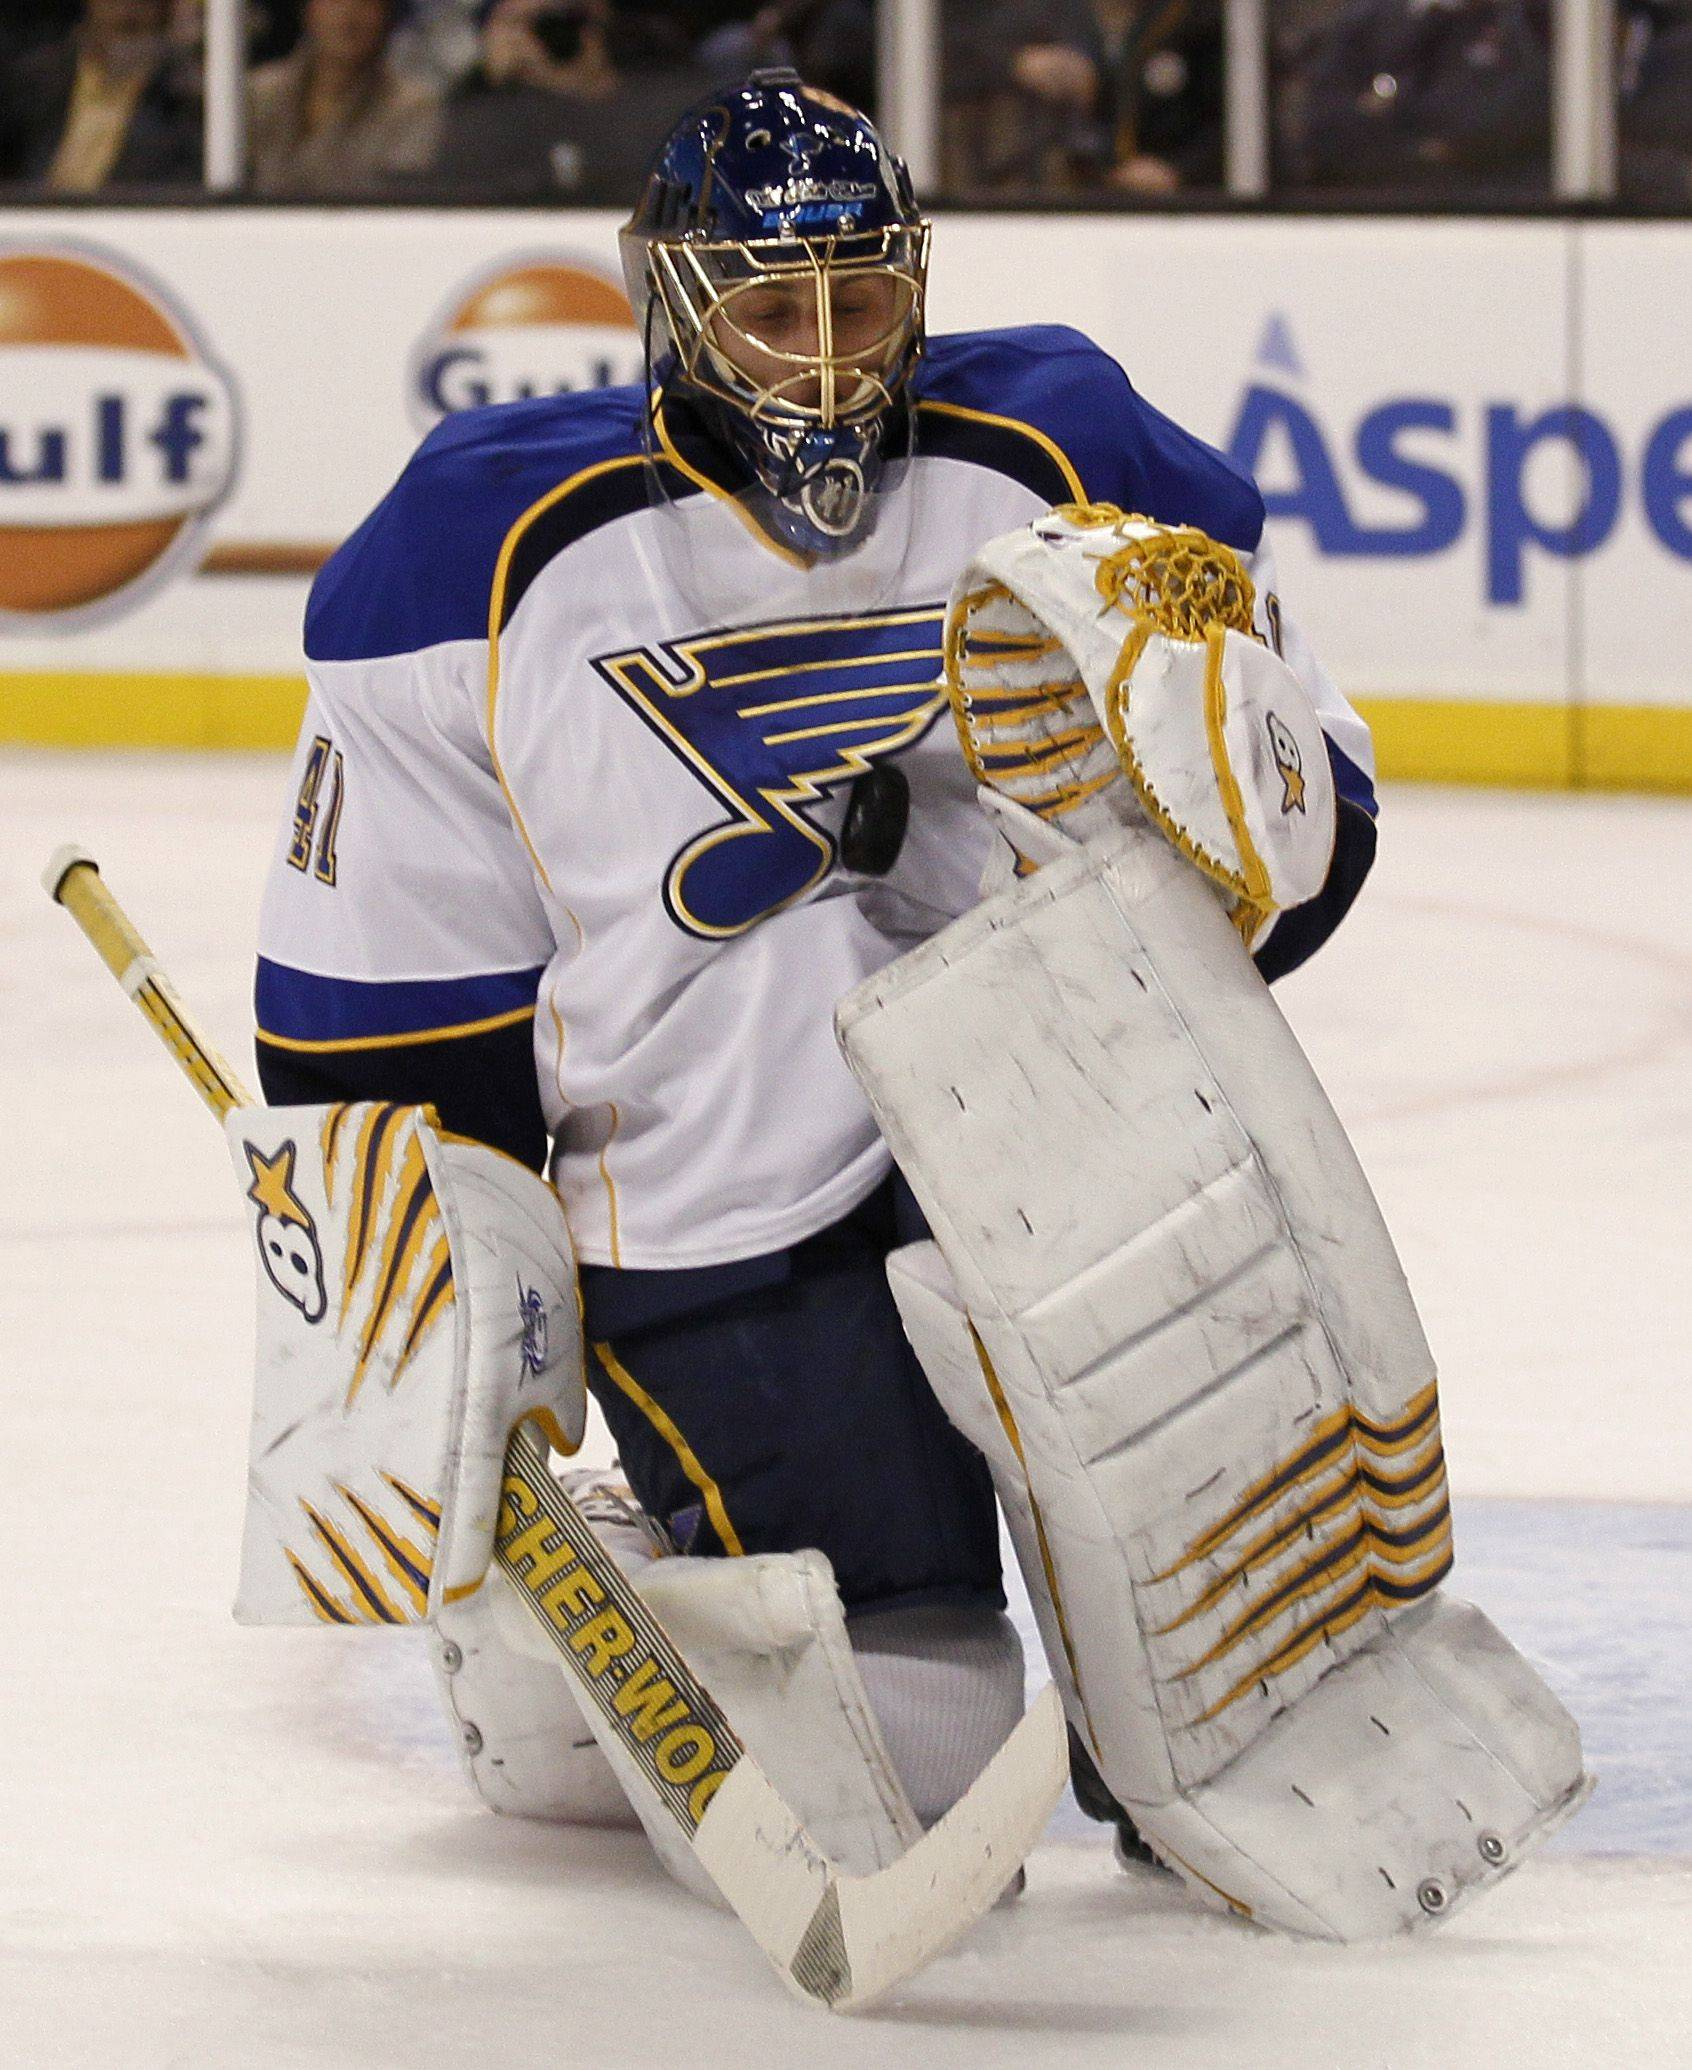 St. Louis Blues goalie Jaroslav Halak makes a save against the Boston Bruins during the second period of their 2-1 shootout win Saturday.